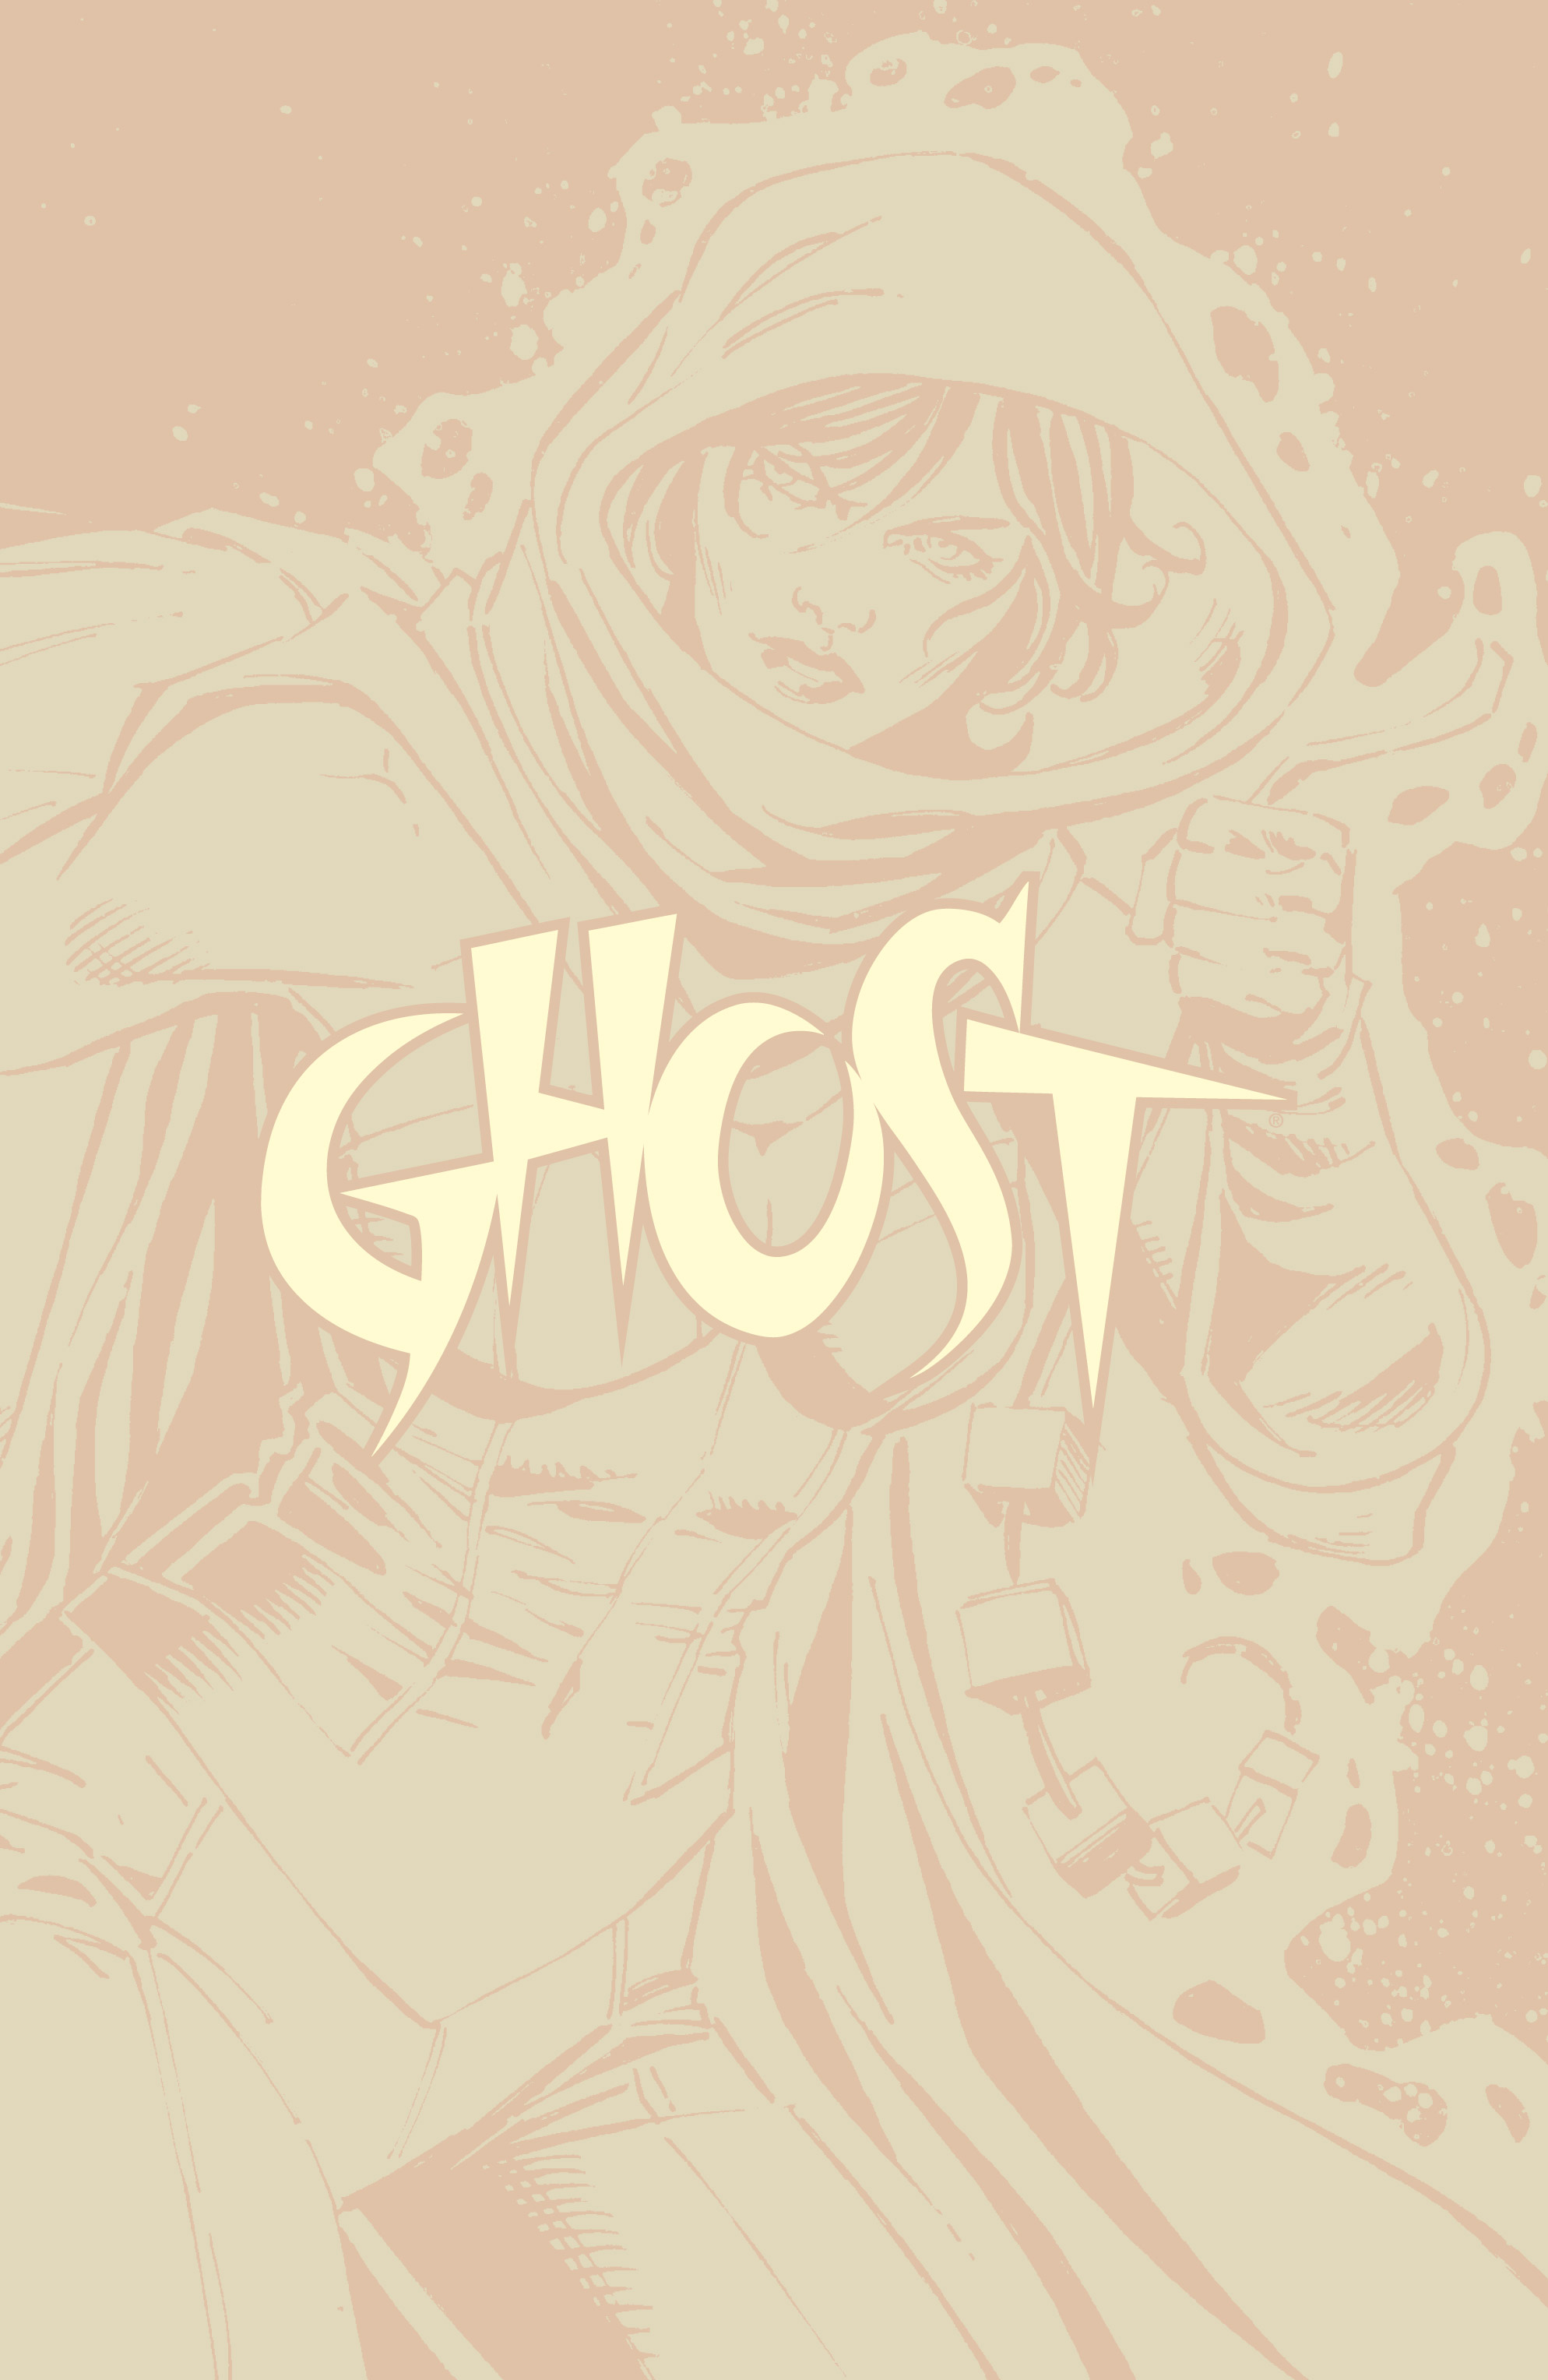 Read online Ghost (2013) comic -  Issue # TPB 2 - 79